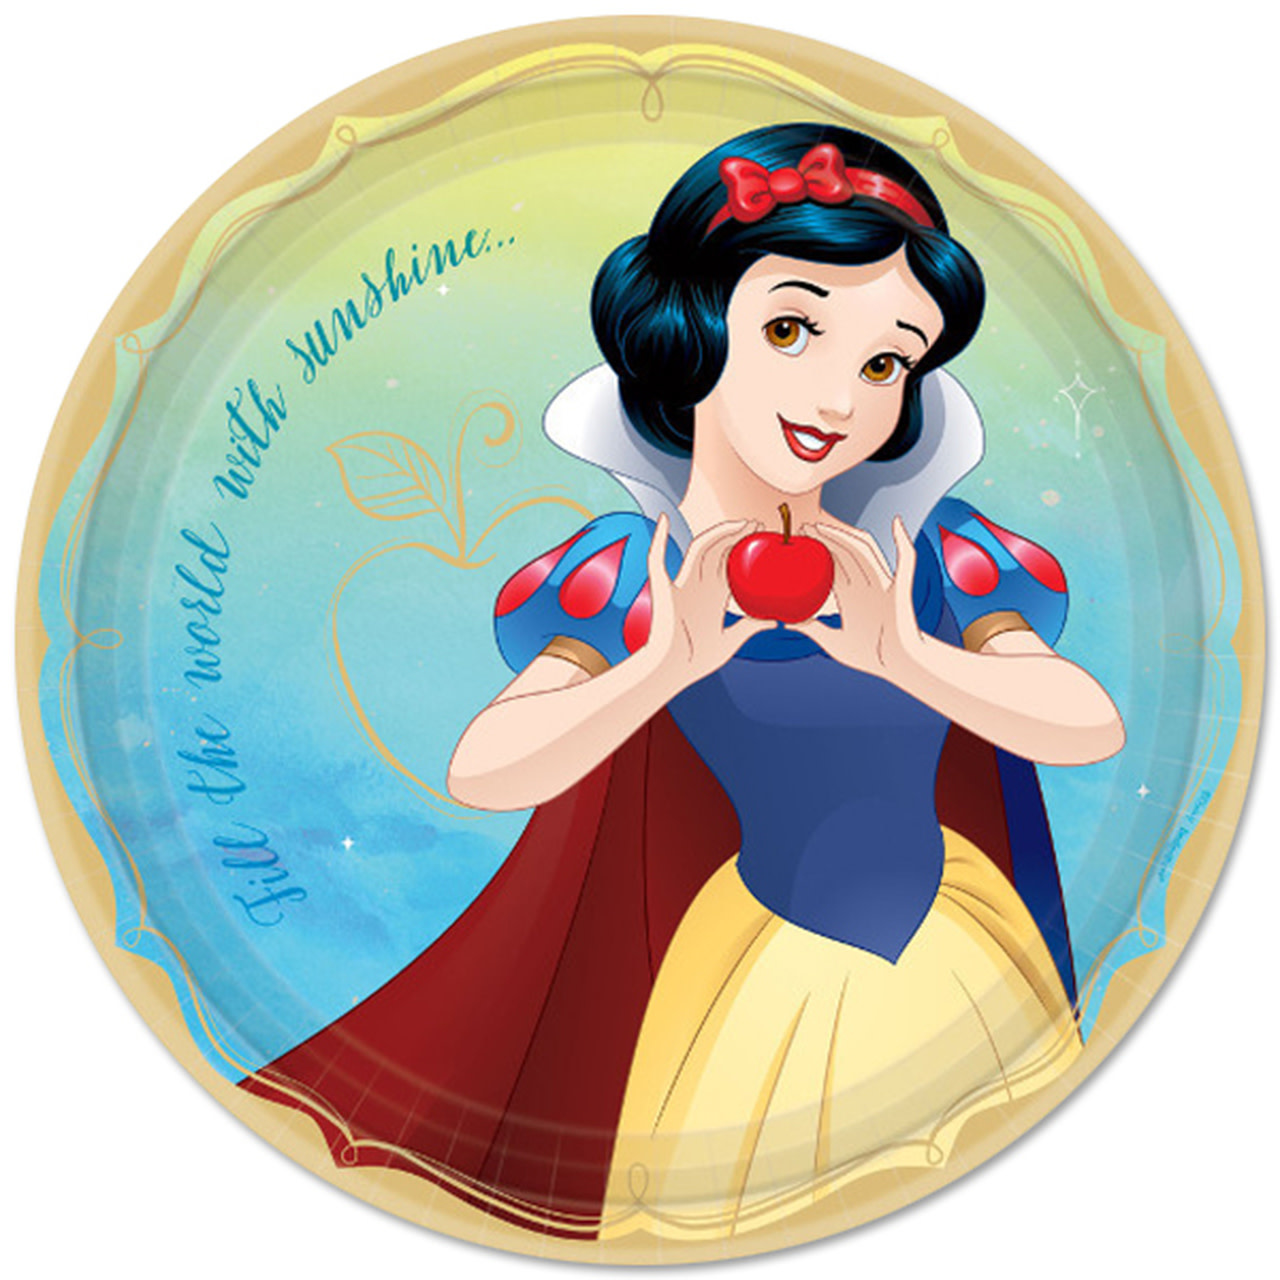 Disney Princess Snow White 9in Plates - 8ct